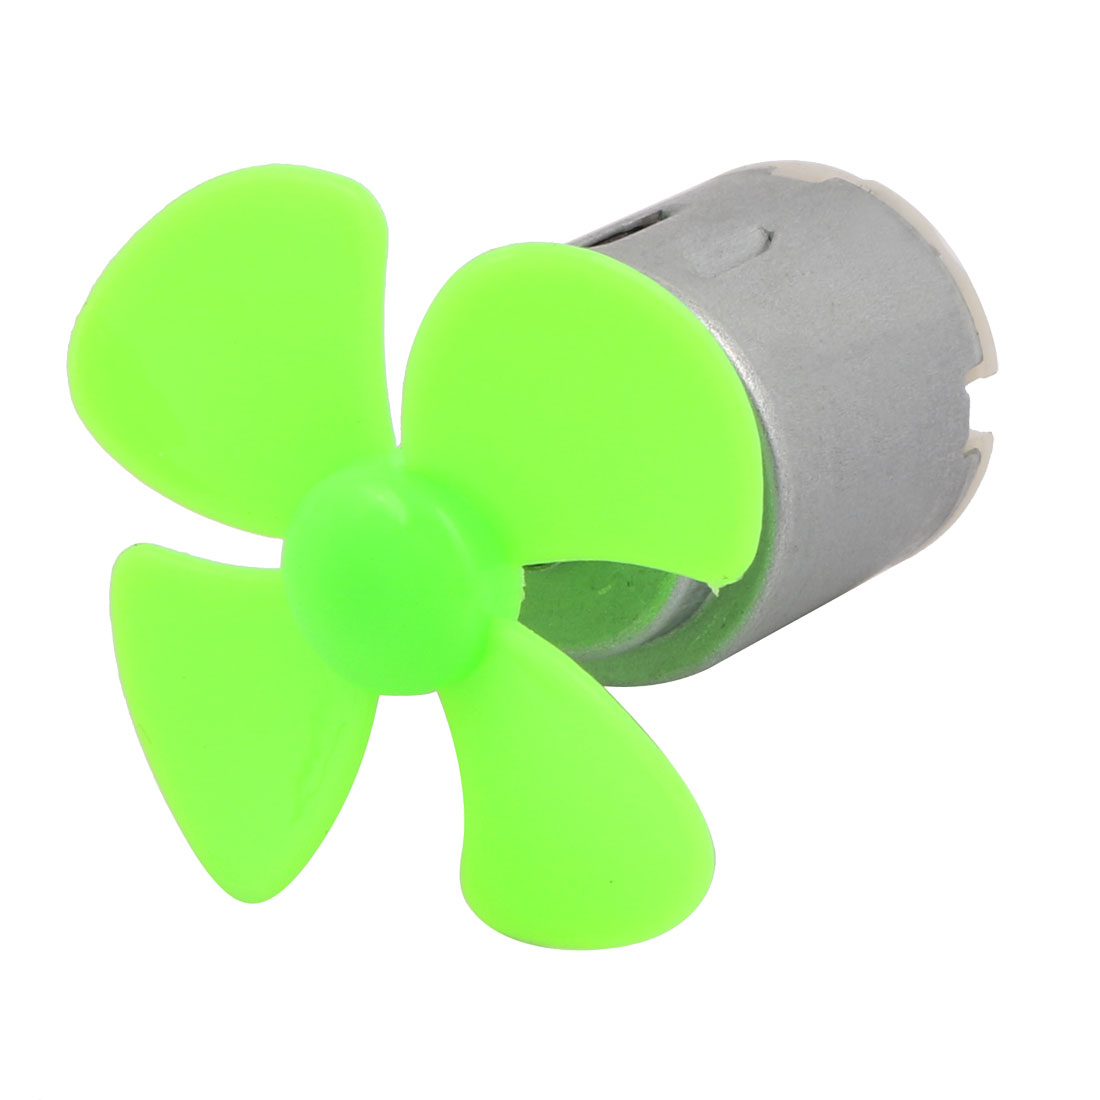 DC 3V 0.13A 12500RPM Strong Force Motor 4 Vanes 40mm Green Propeller for RC Aircraft